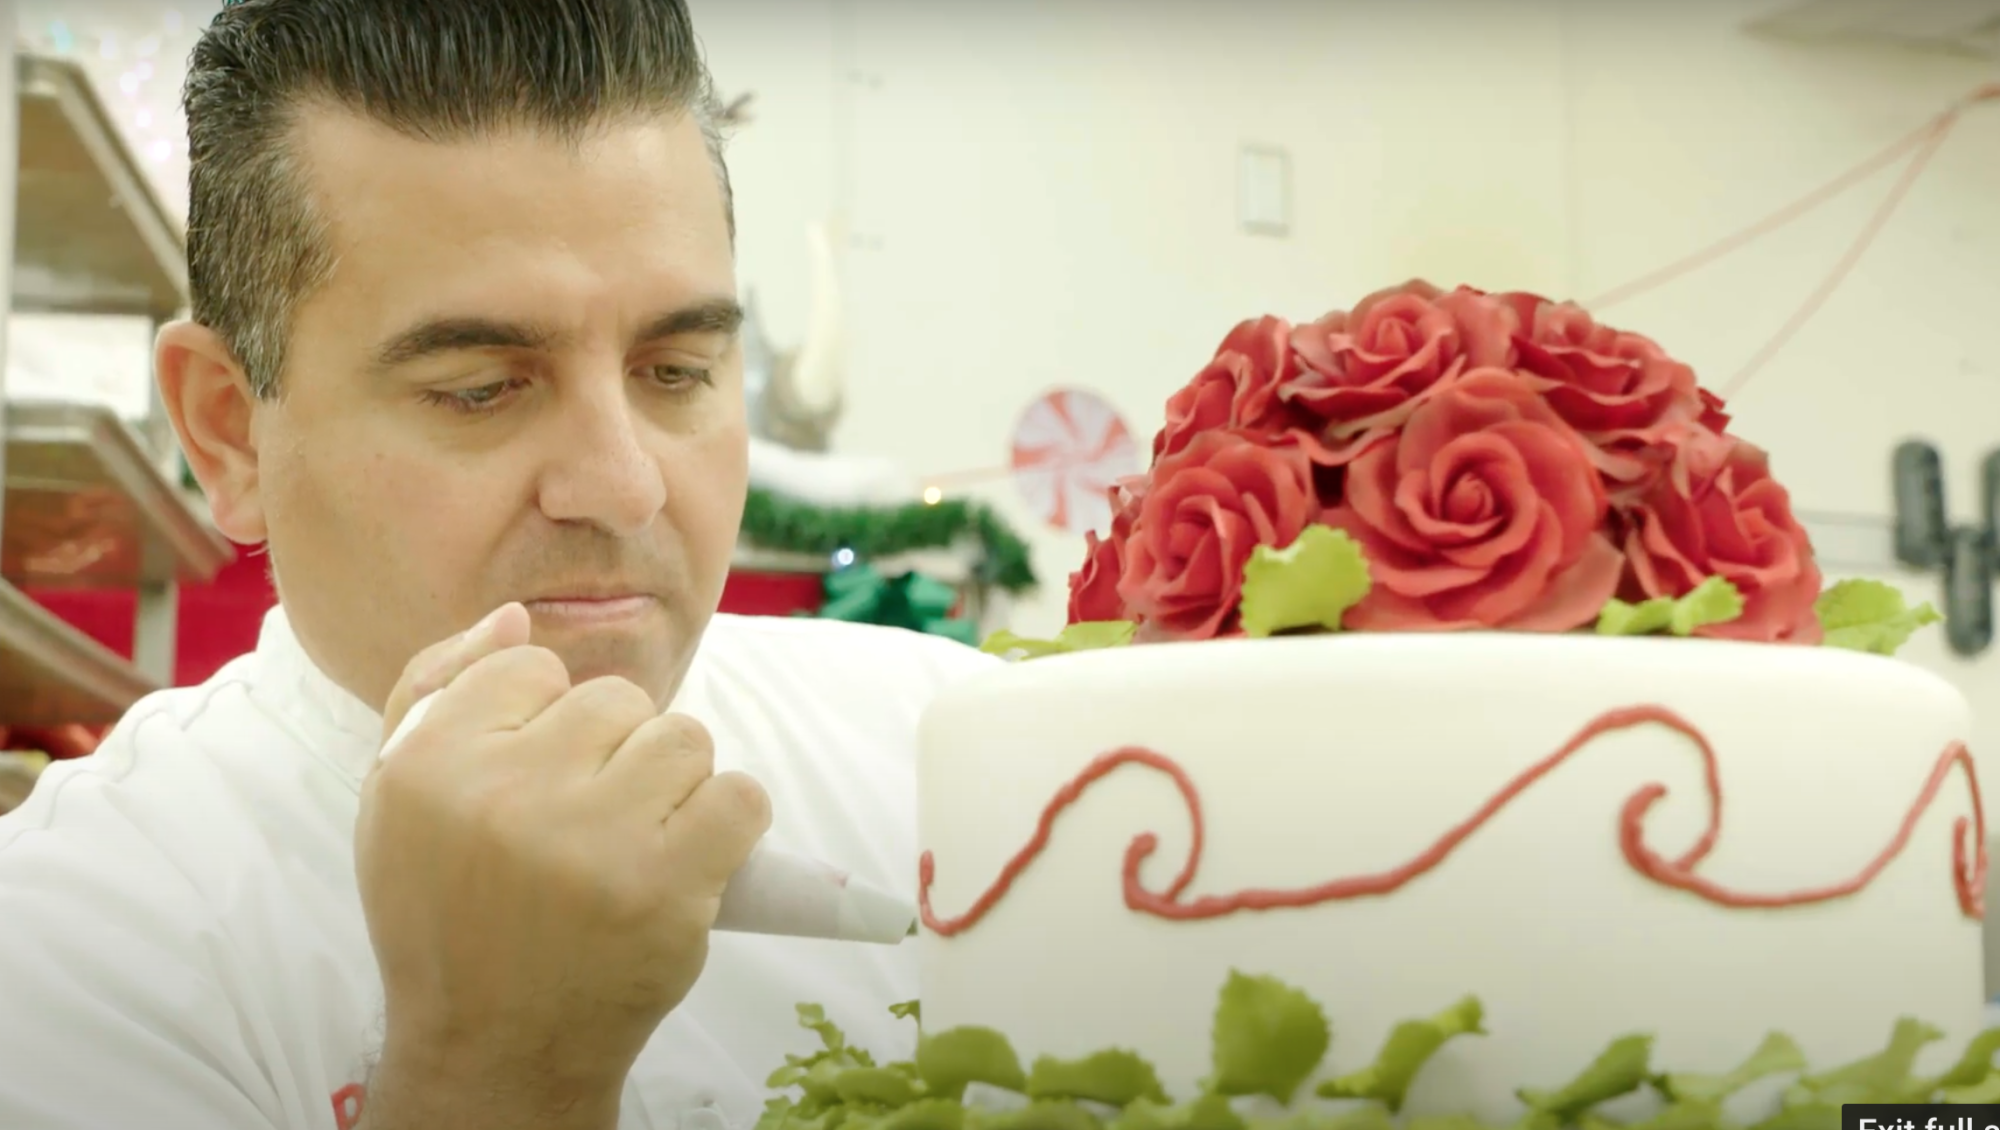 Cake Boss urges business owners to 'pivot and diversify' during the COVID-19 pandemic [Video]